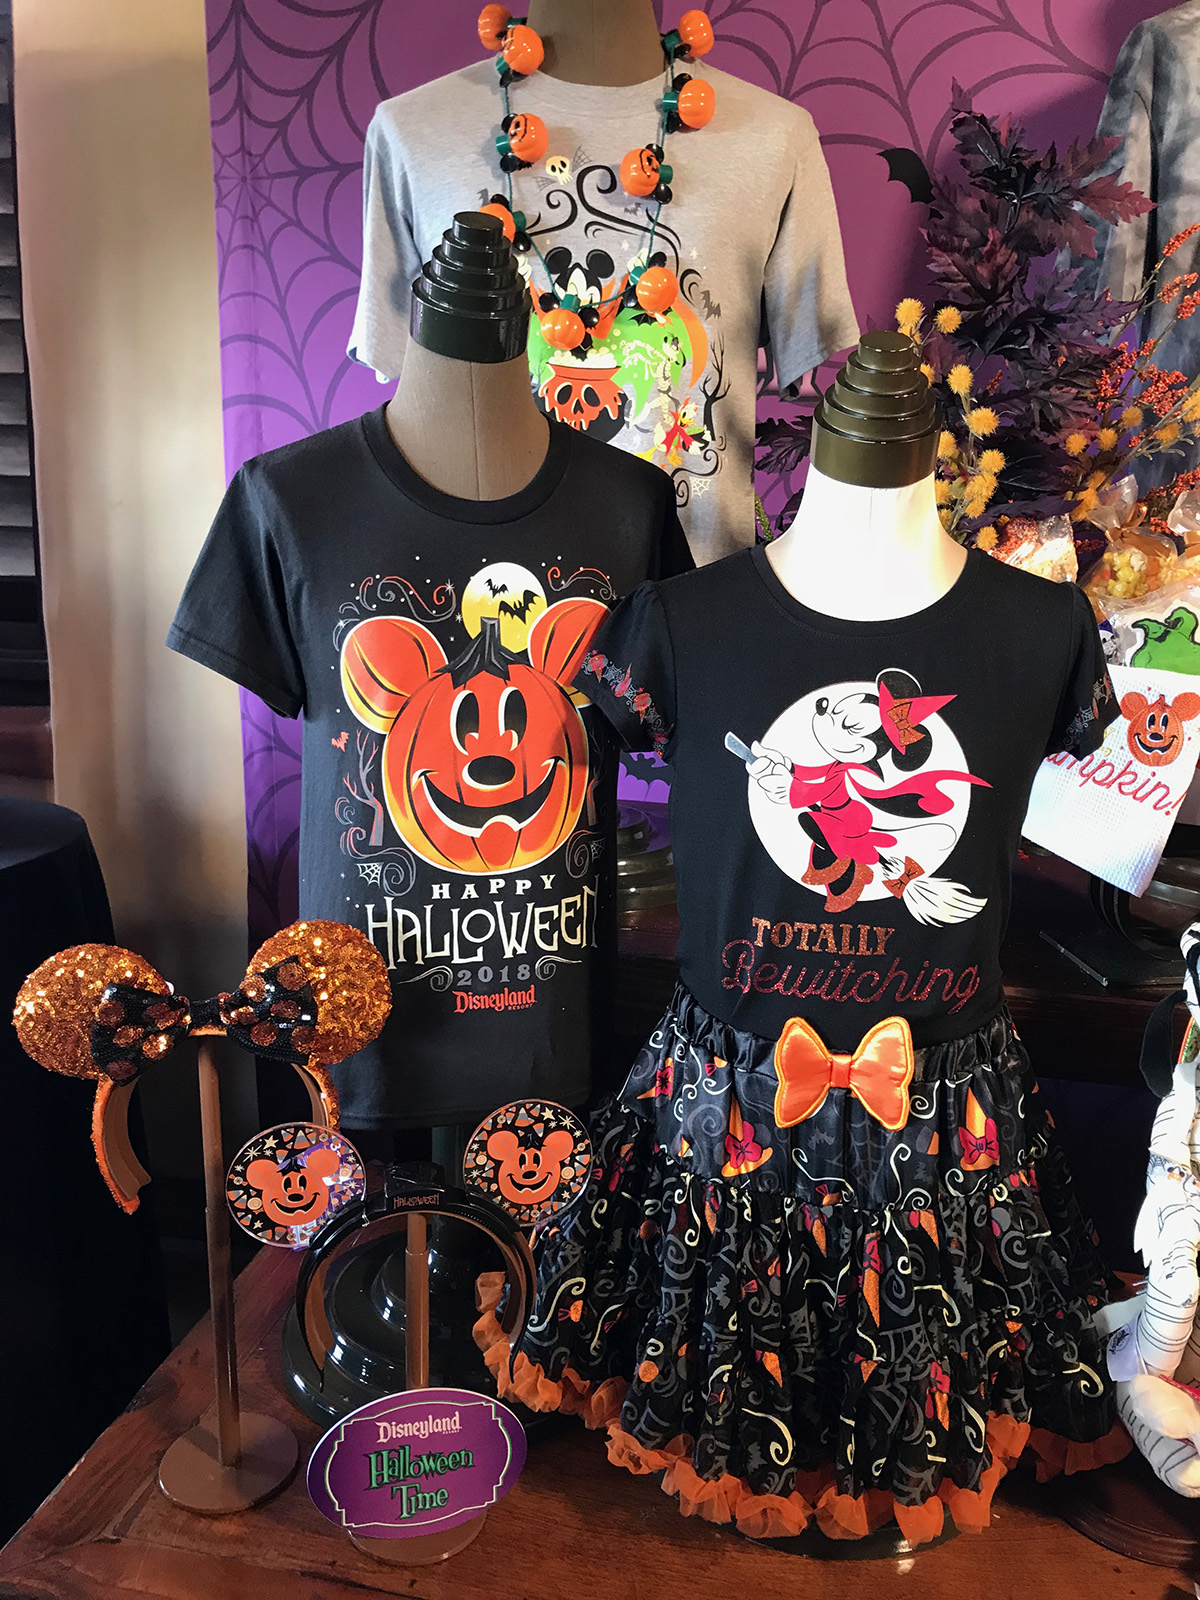 Disneyland Halloween 2019 Merchandise.Mouseplanet Disneyland Resort Update For September 17 23 2018 By